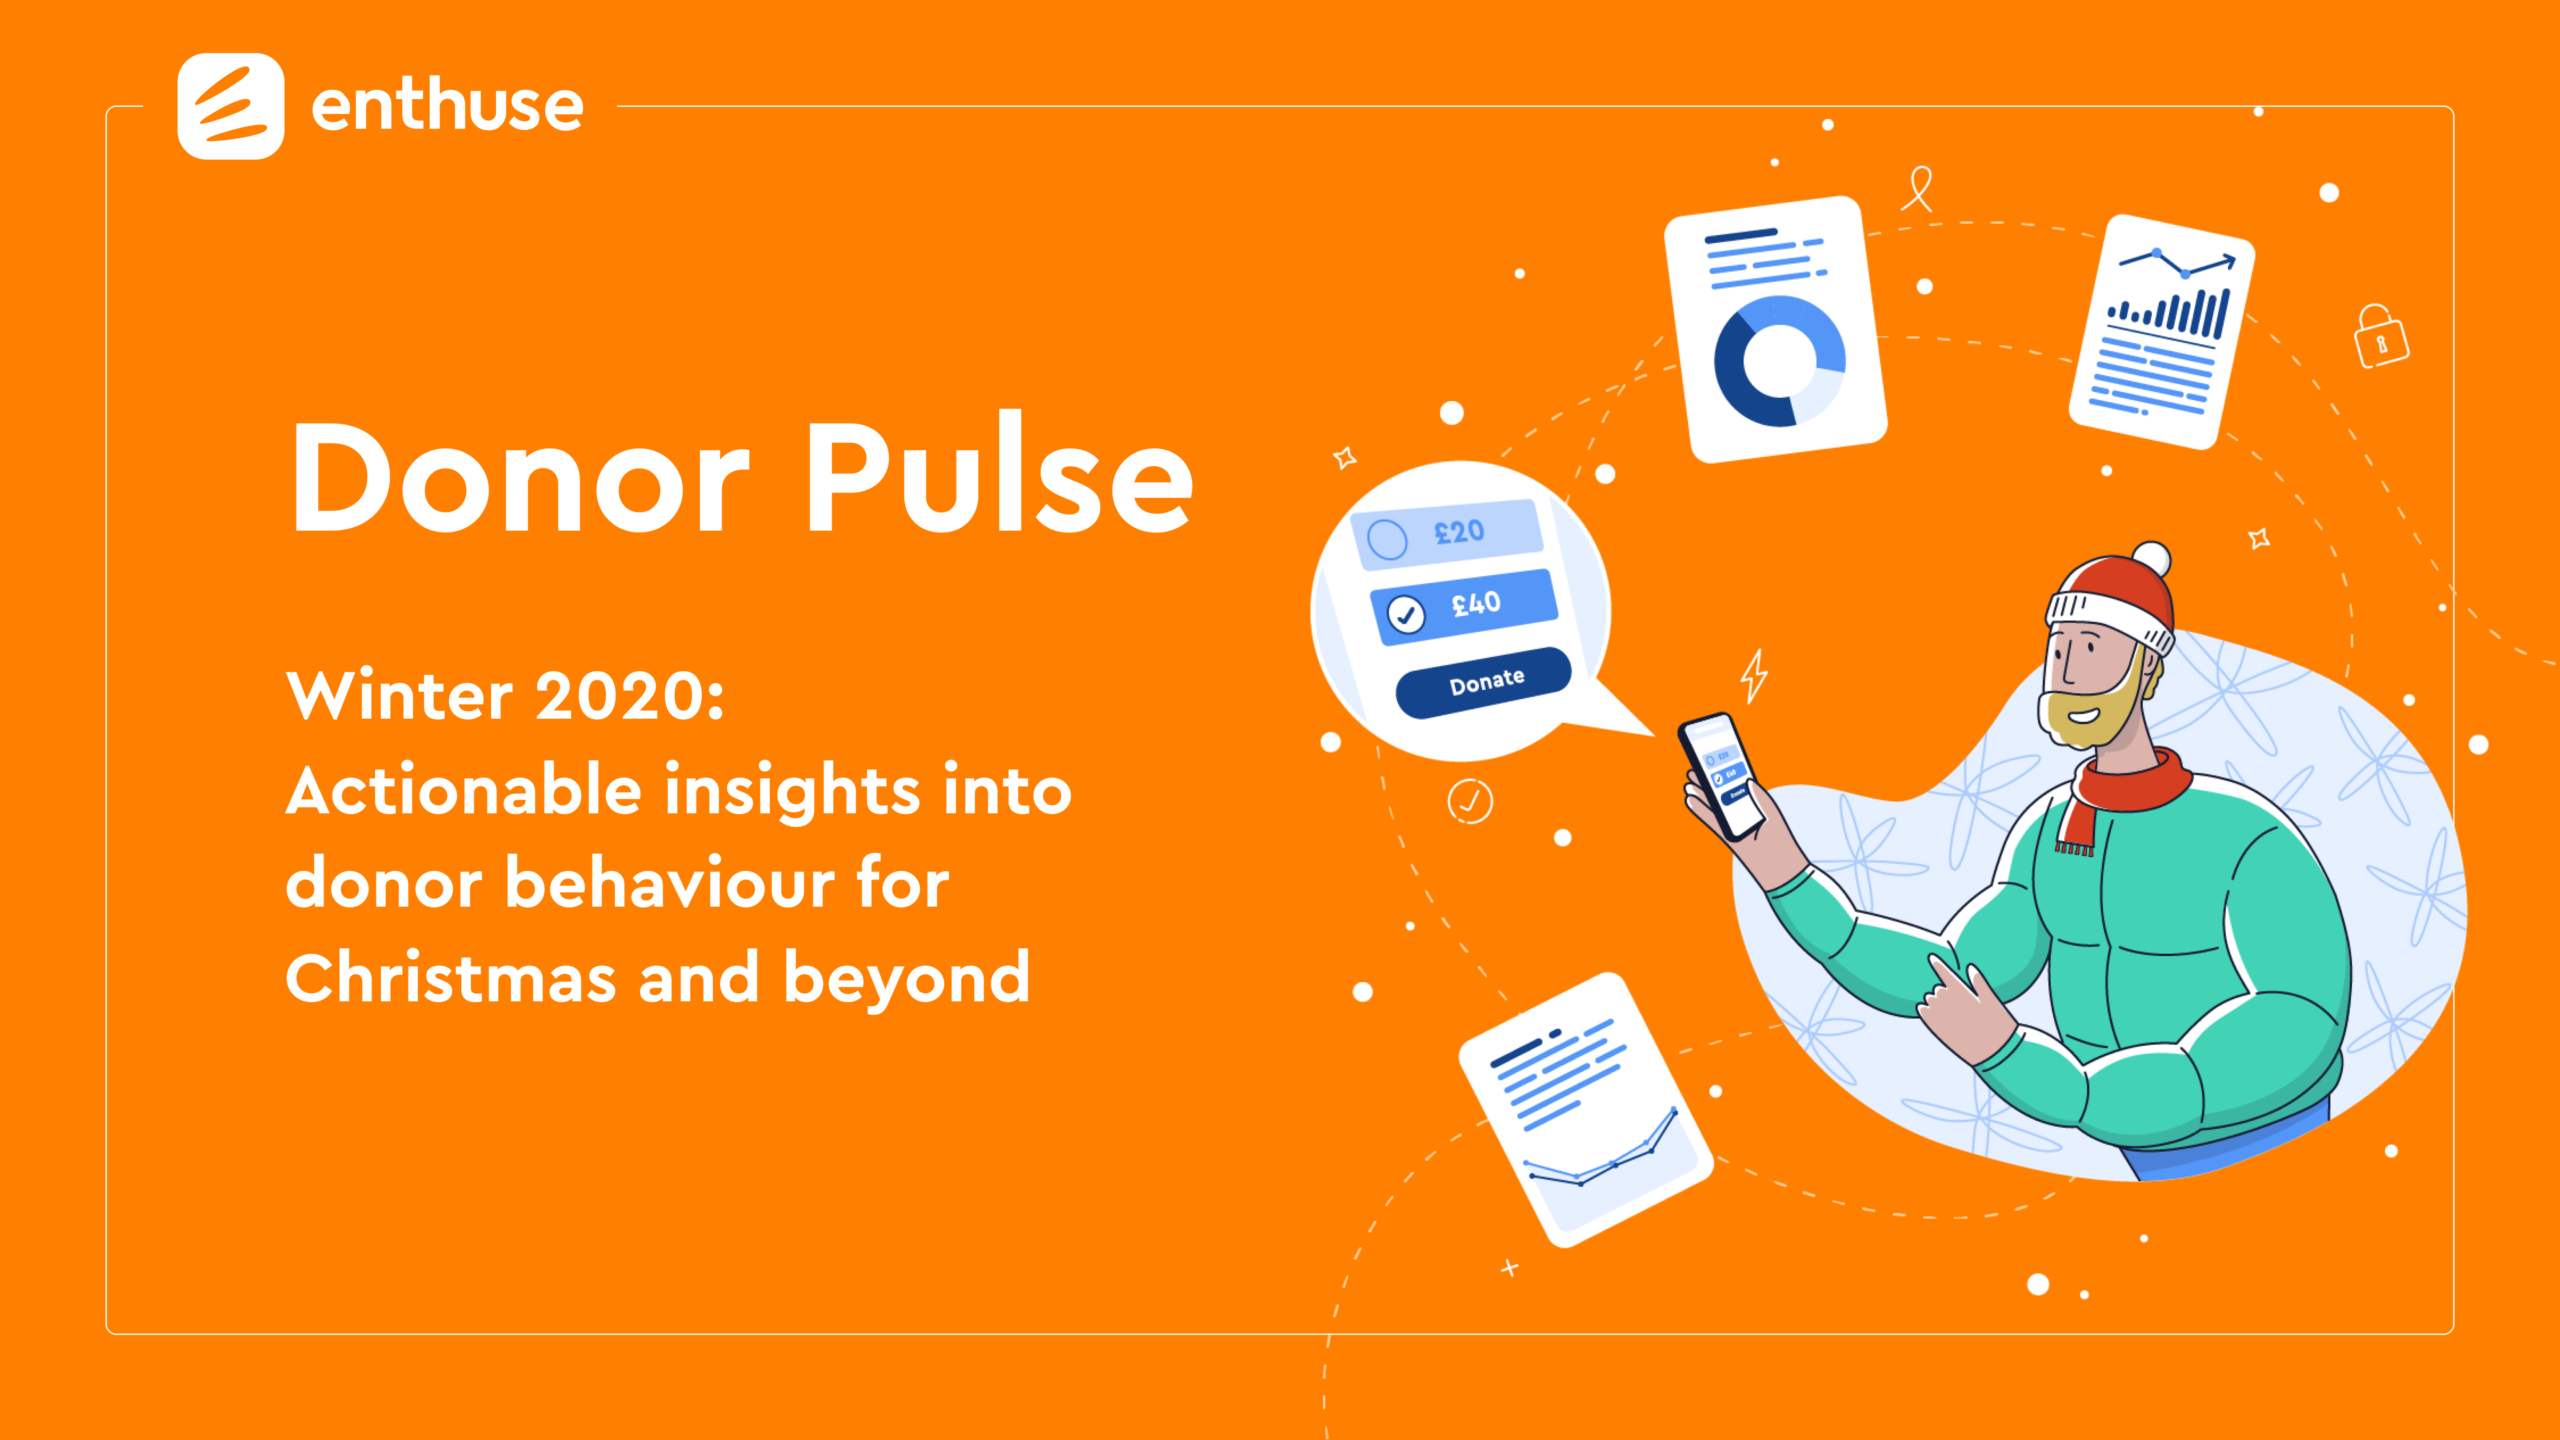 Donor Pulse Report Winter 2020